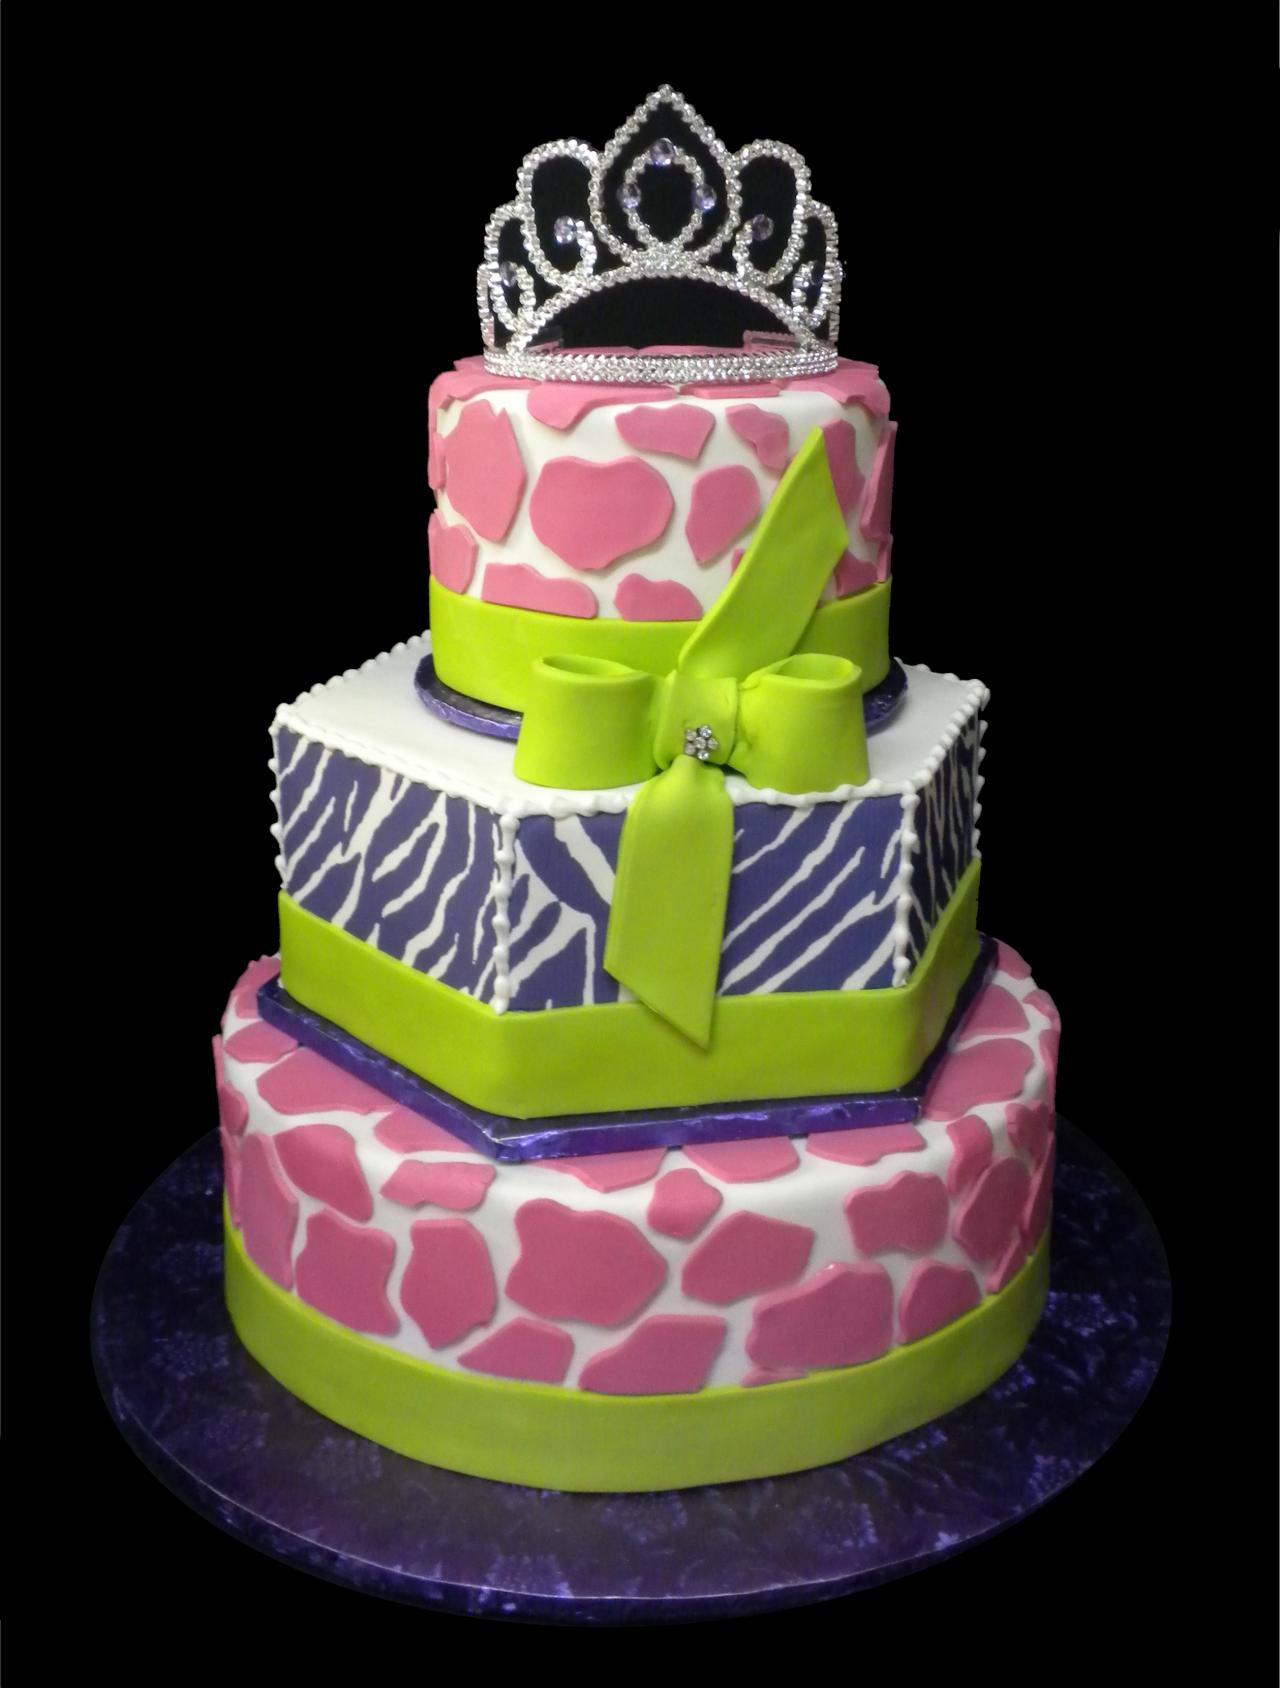 Animal Print Birthday Cake White Buttercream Iced 3 Tiers Round And Hexagon Decorated With